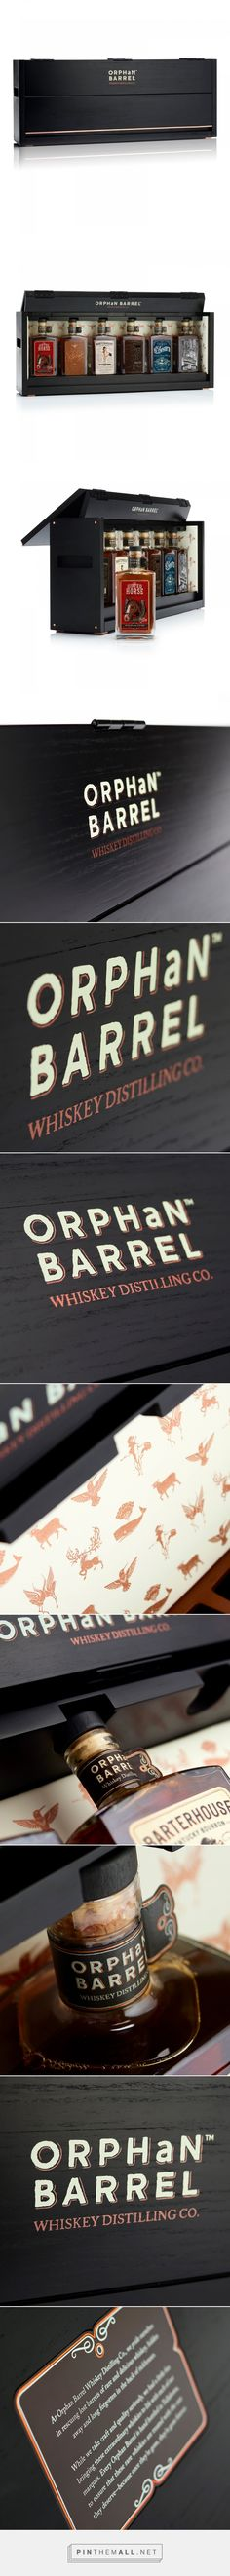 Orphan Barrel Whiskies Collector's Crate packaging by MW Luxury Packaging - http://www.packagingoftheworld.com/2017/06/orphan-barrel-whiskies-collectors-crate.html